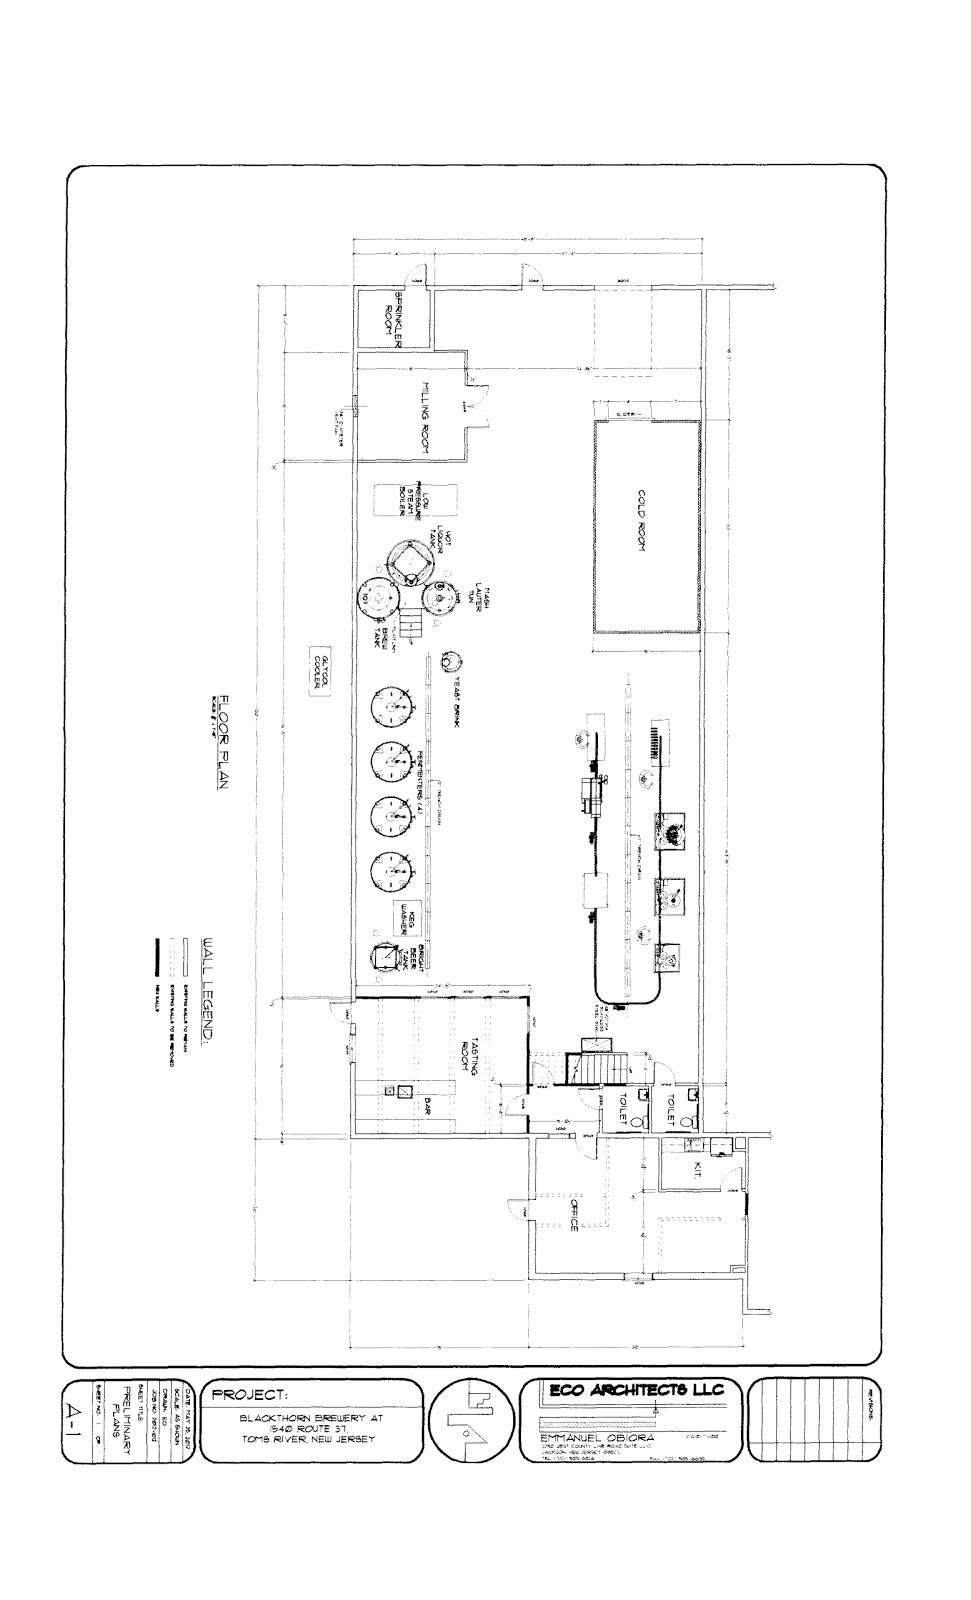 Electric home brewing setup diagram home brewing art for Brewery floor plan